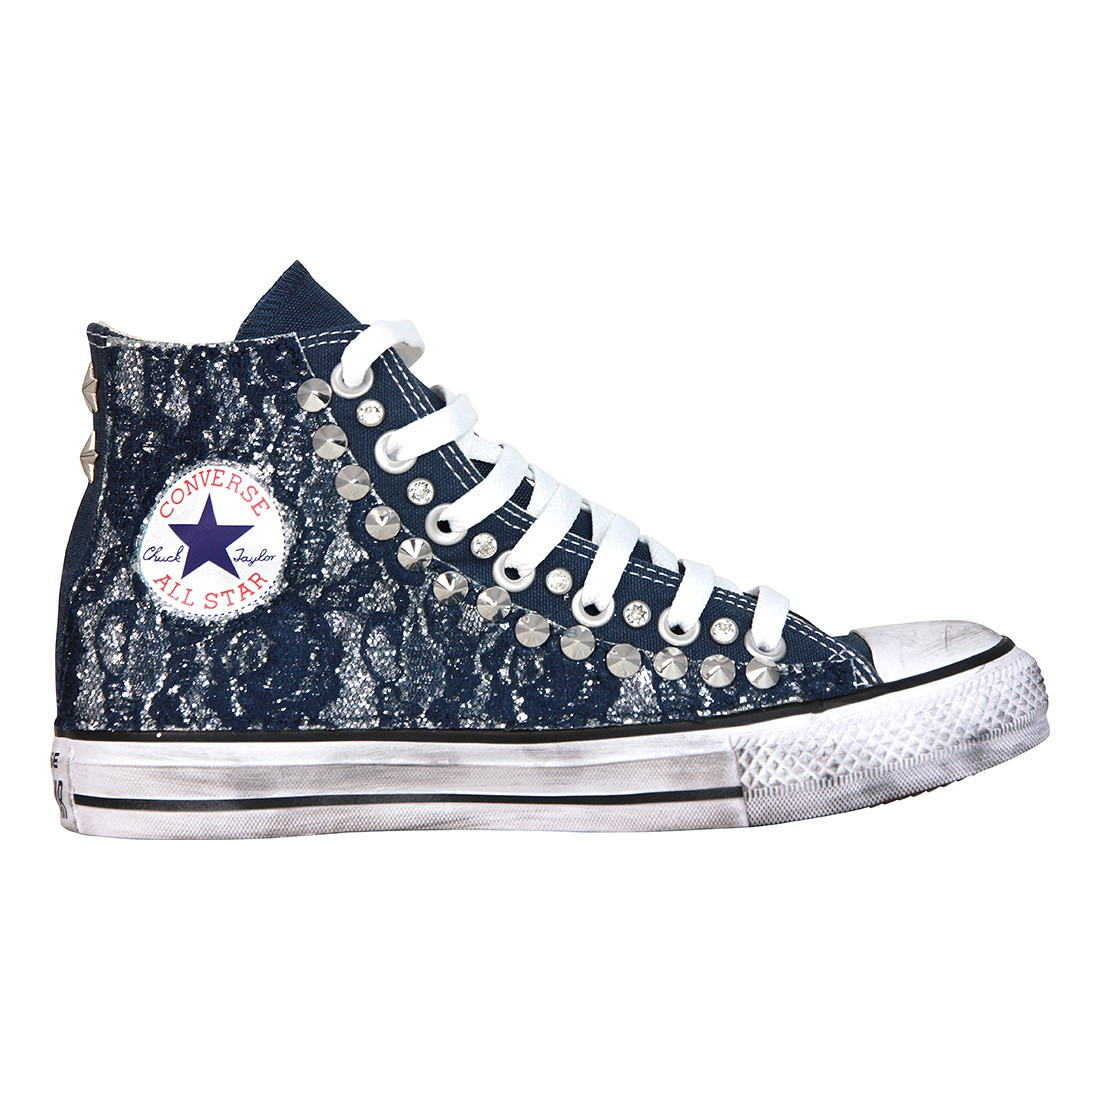 2converse all star pizzo nere